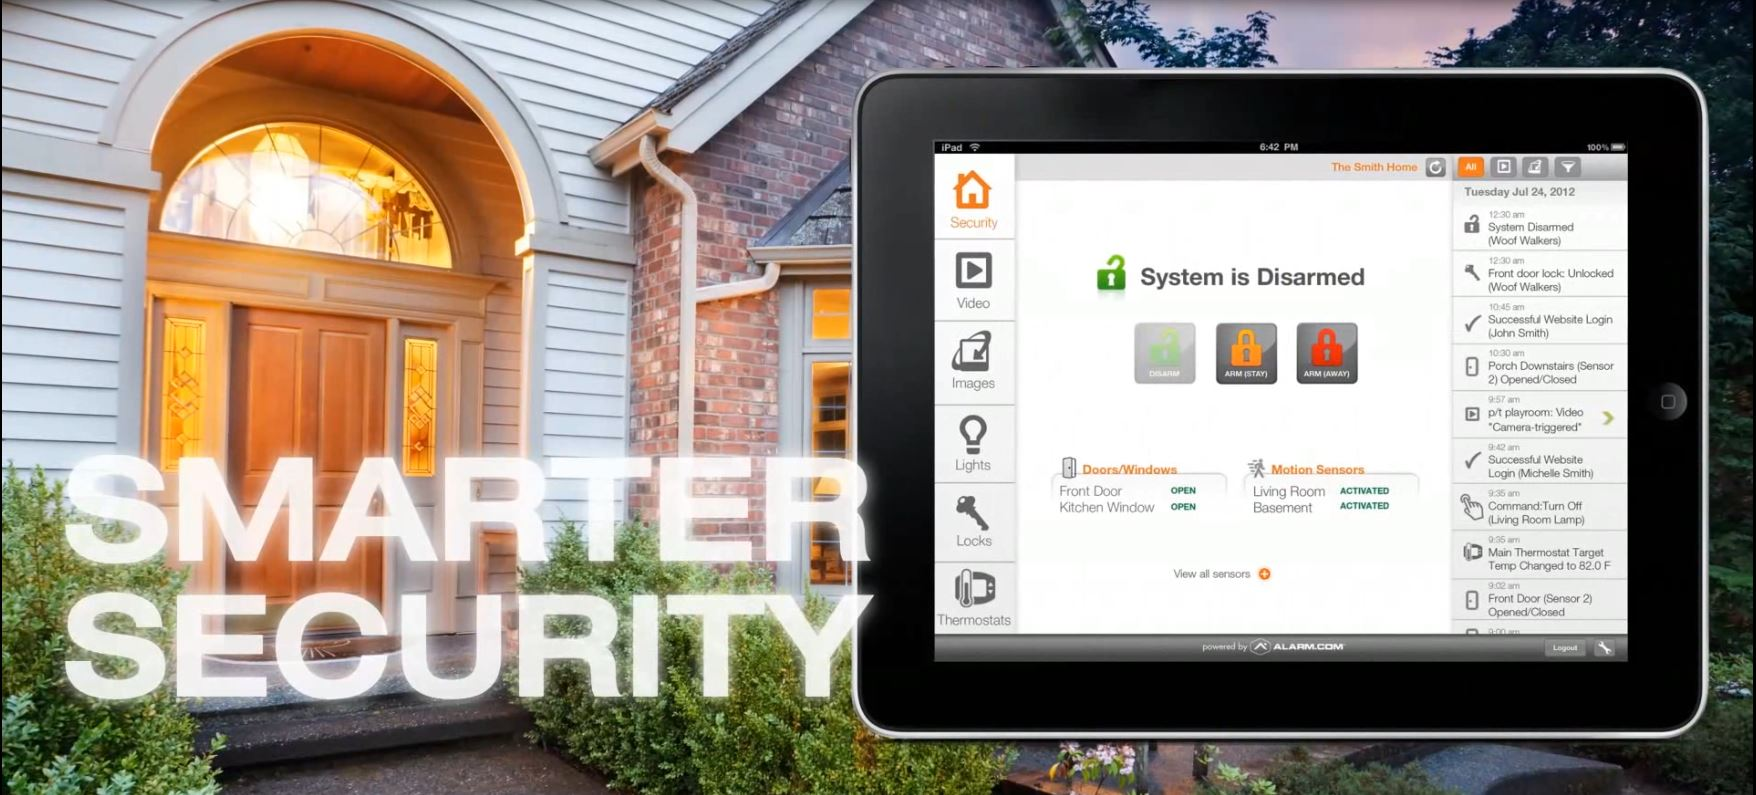 Alarm Engineering powered by Alarm.com provides a whole other level of security & convenience.